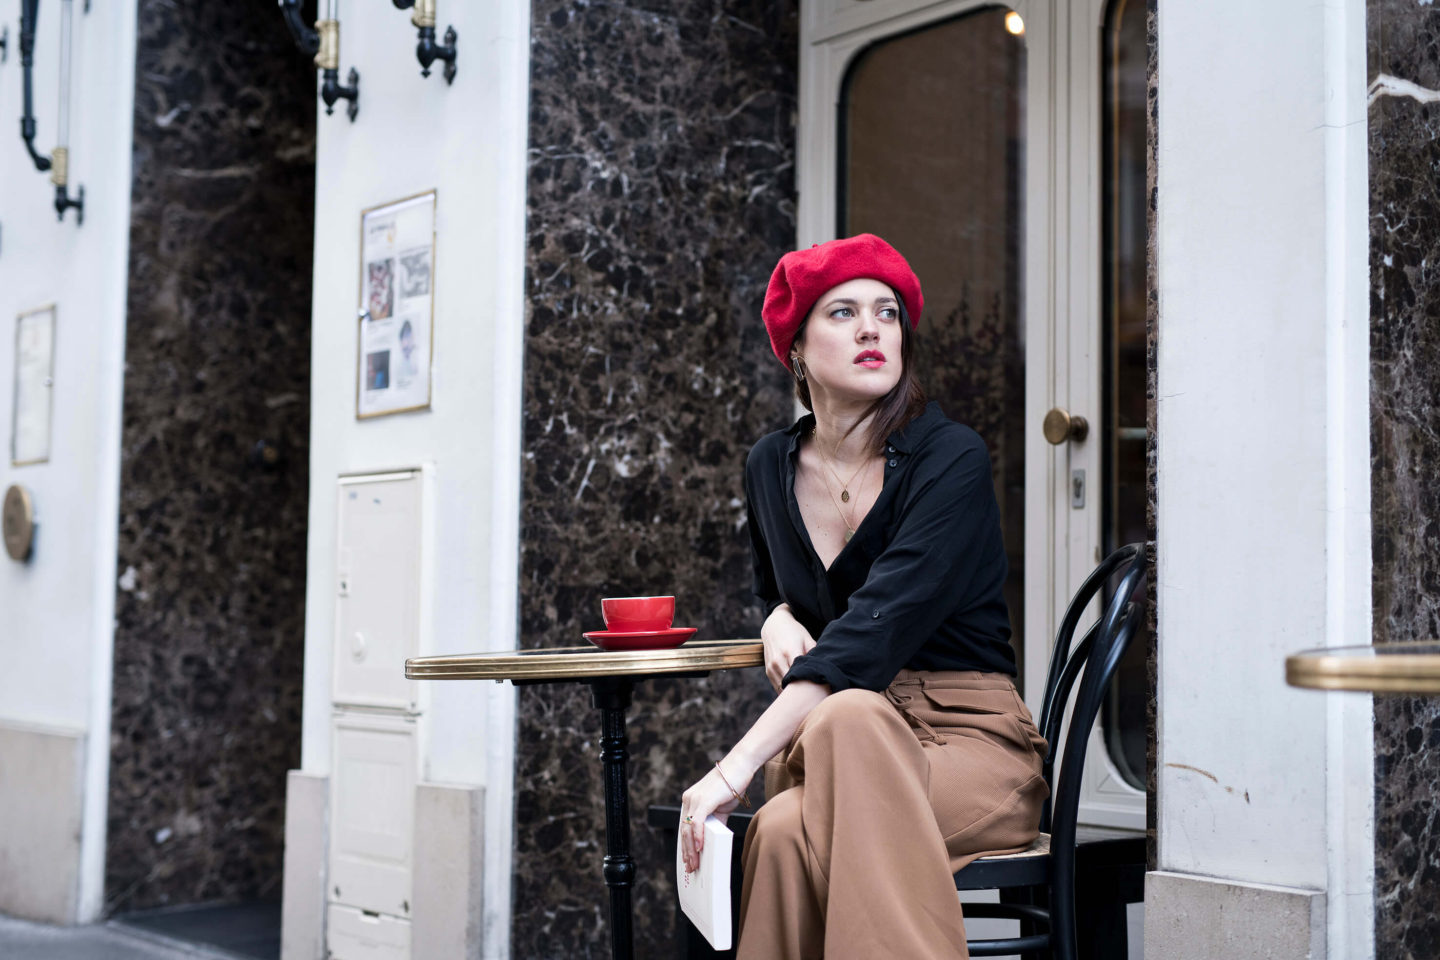 Look paris Le pIgalle Hôtel L'atelierd 'al blog mode lifestyle fashion